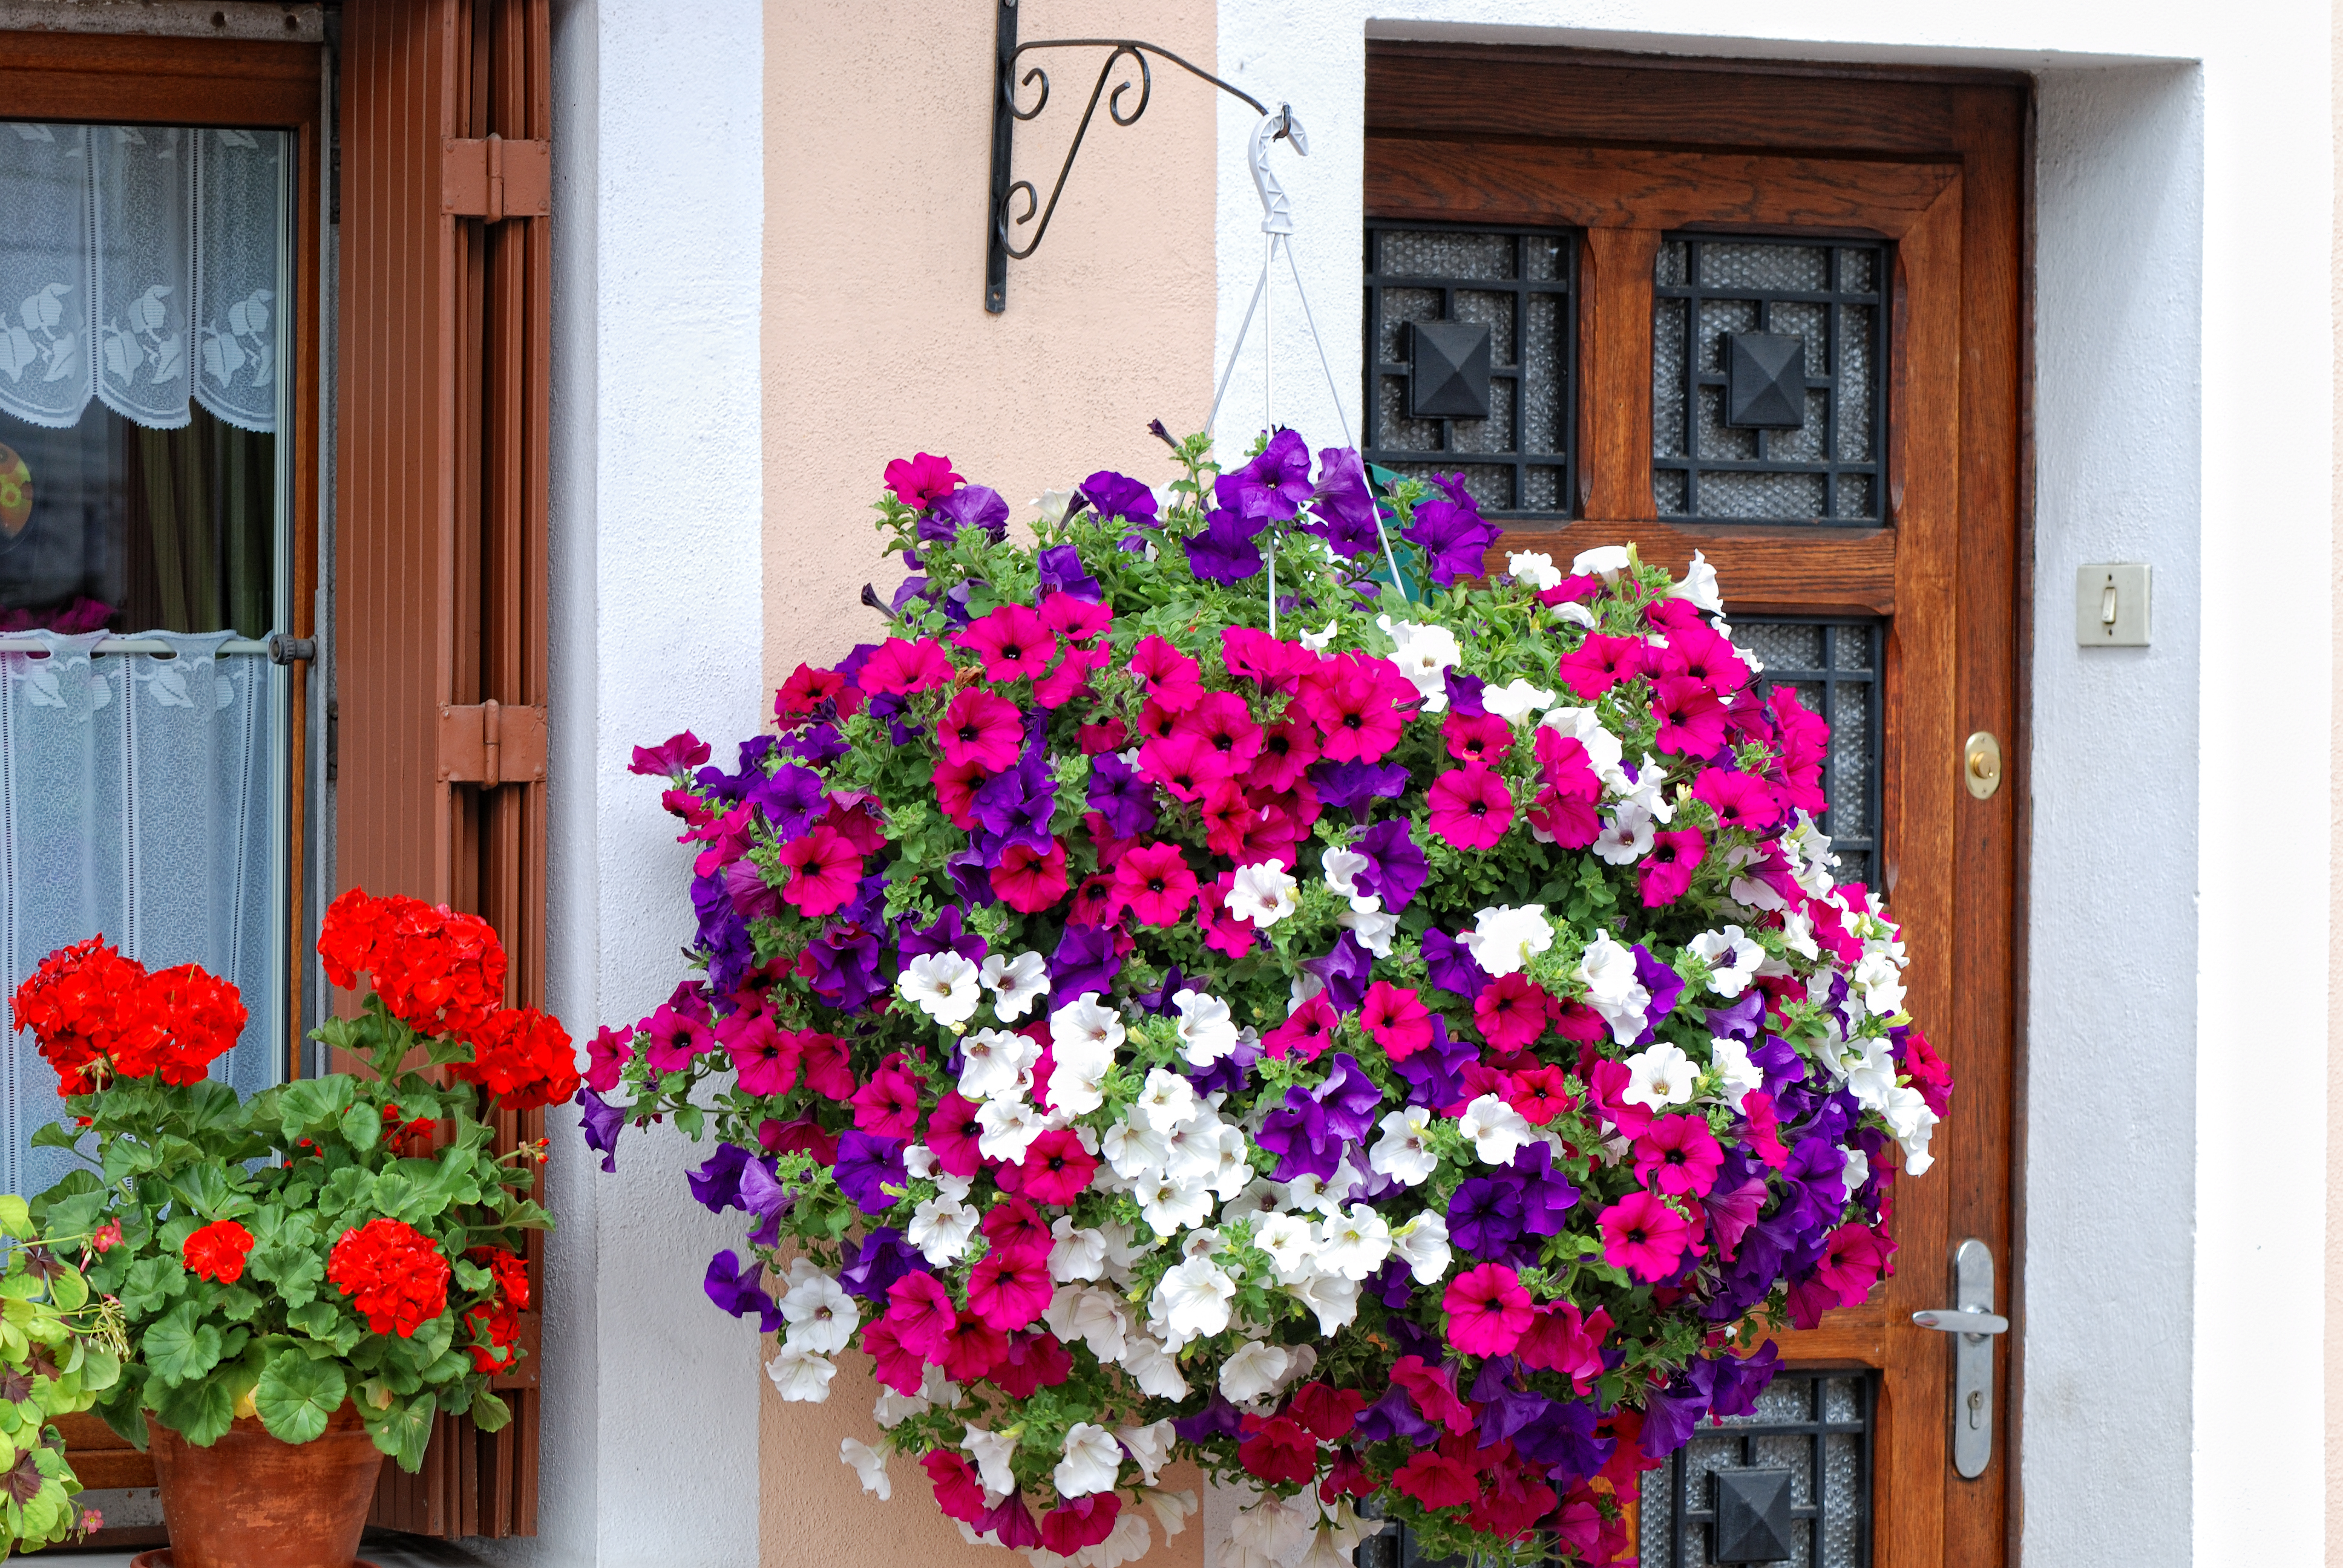 Hanging baskets in bloom (Thinkstock/PA)